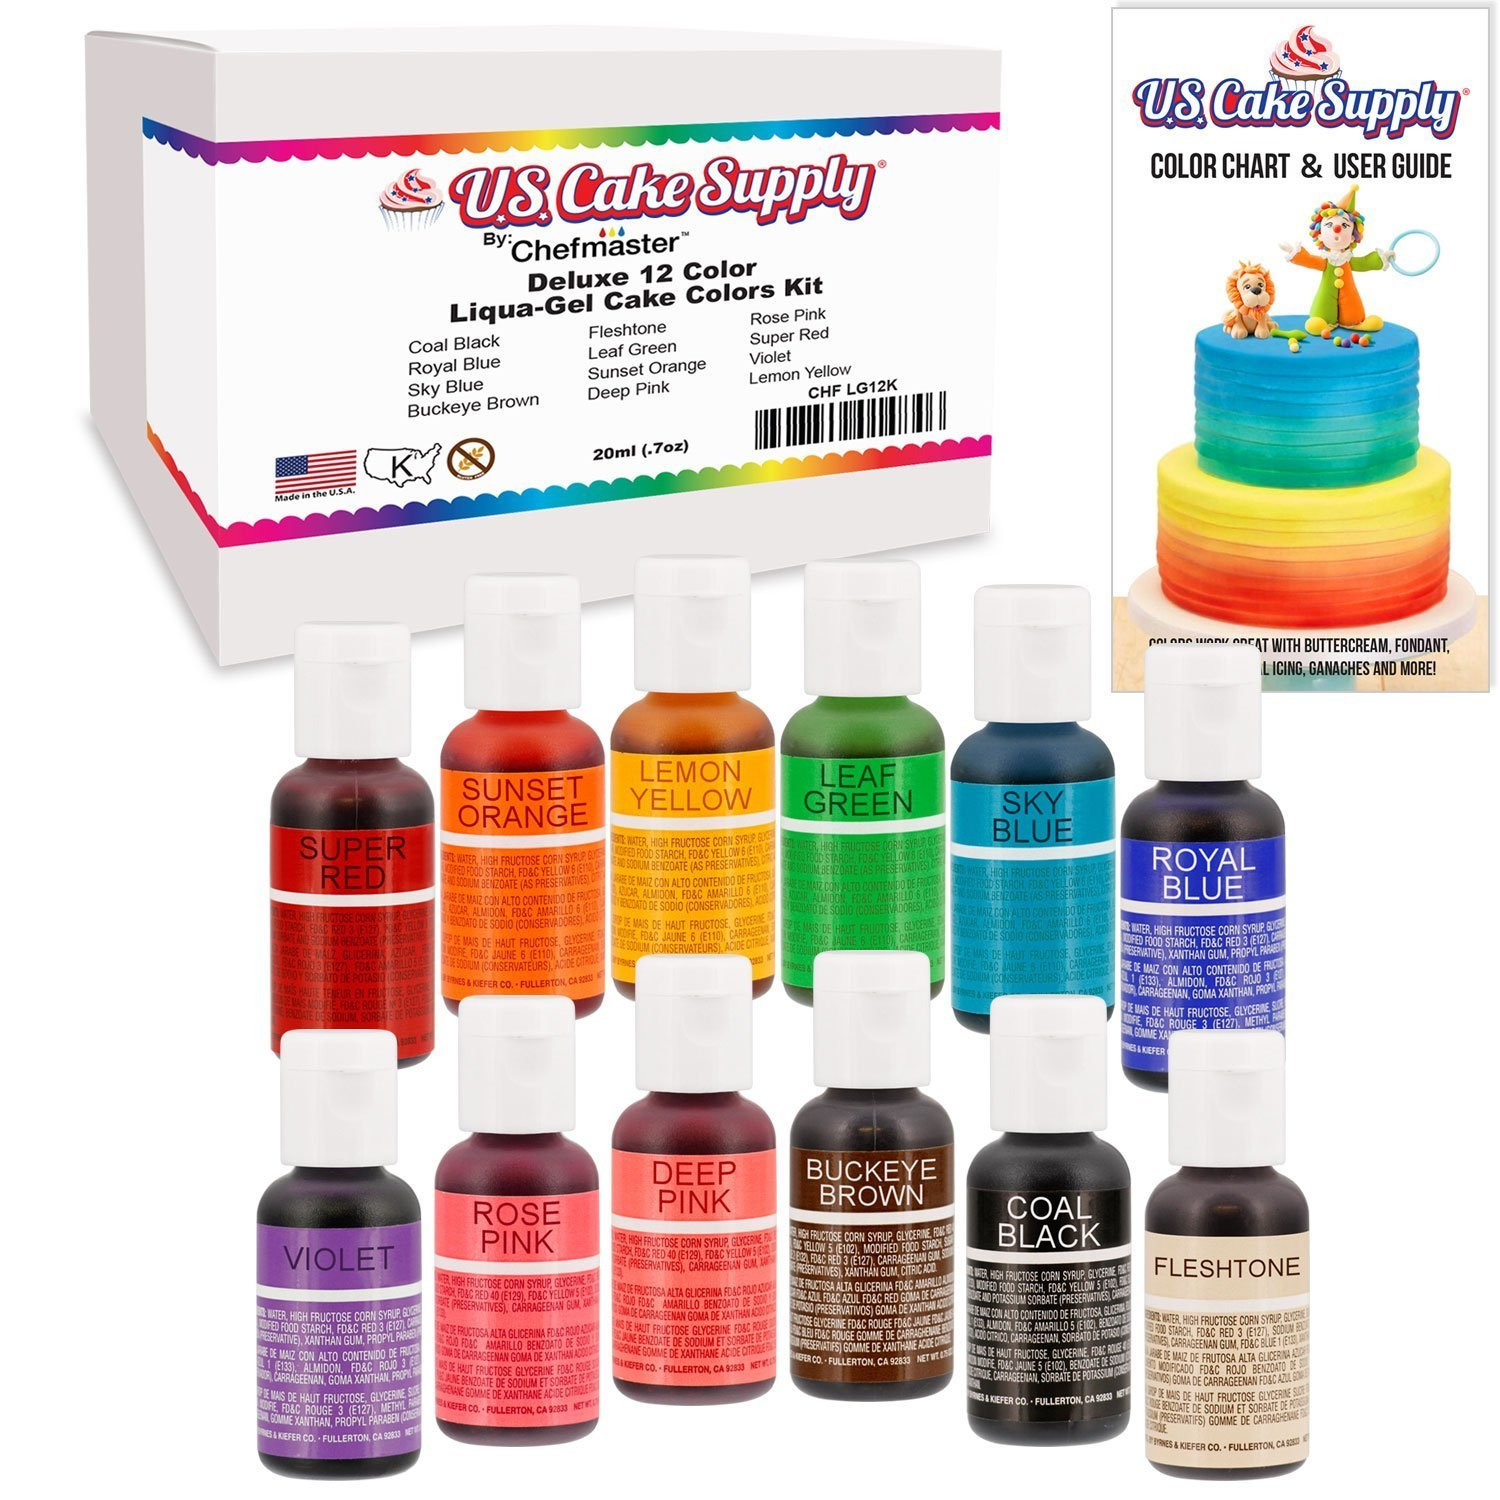 12 Food Color-US Cake Supply by Chefmaster Liqua-Gel Past...